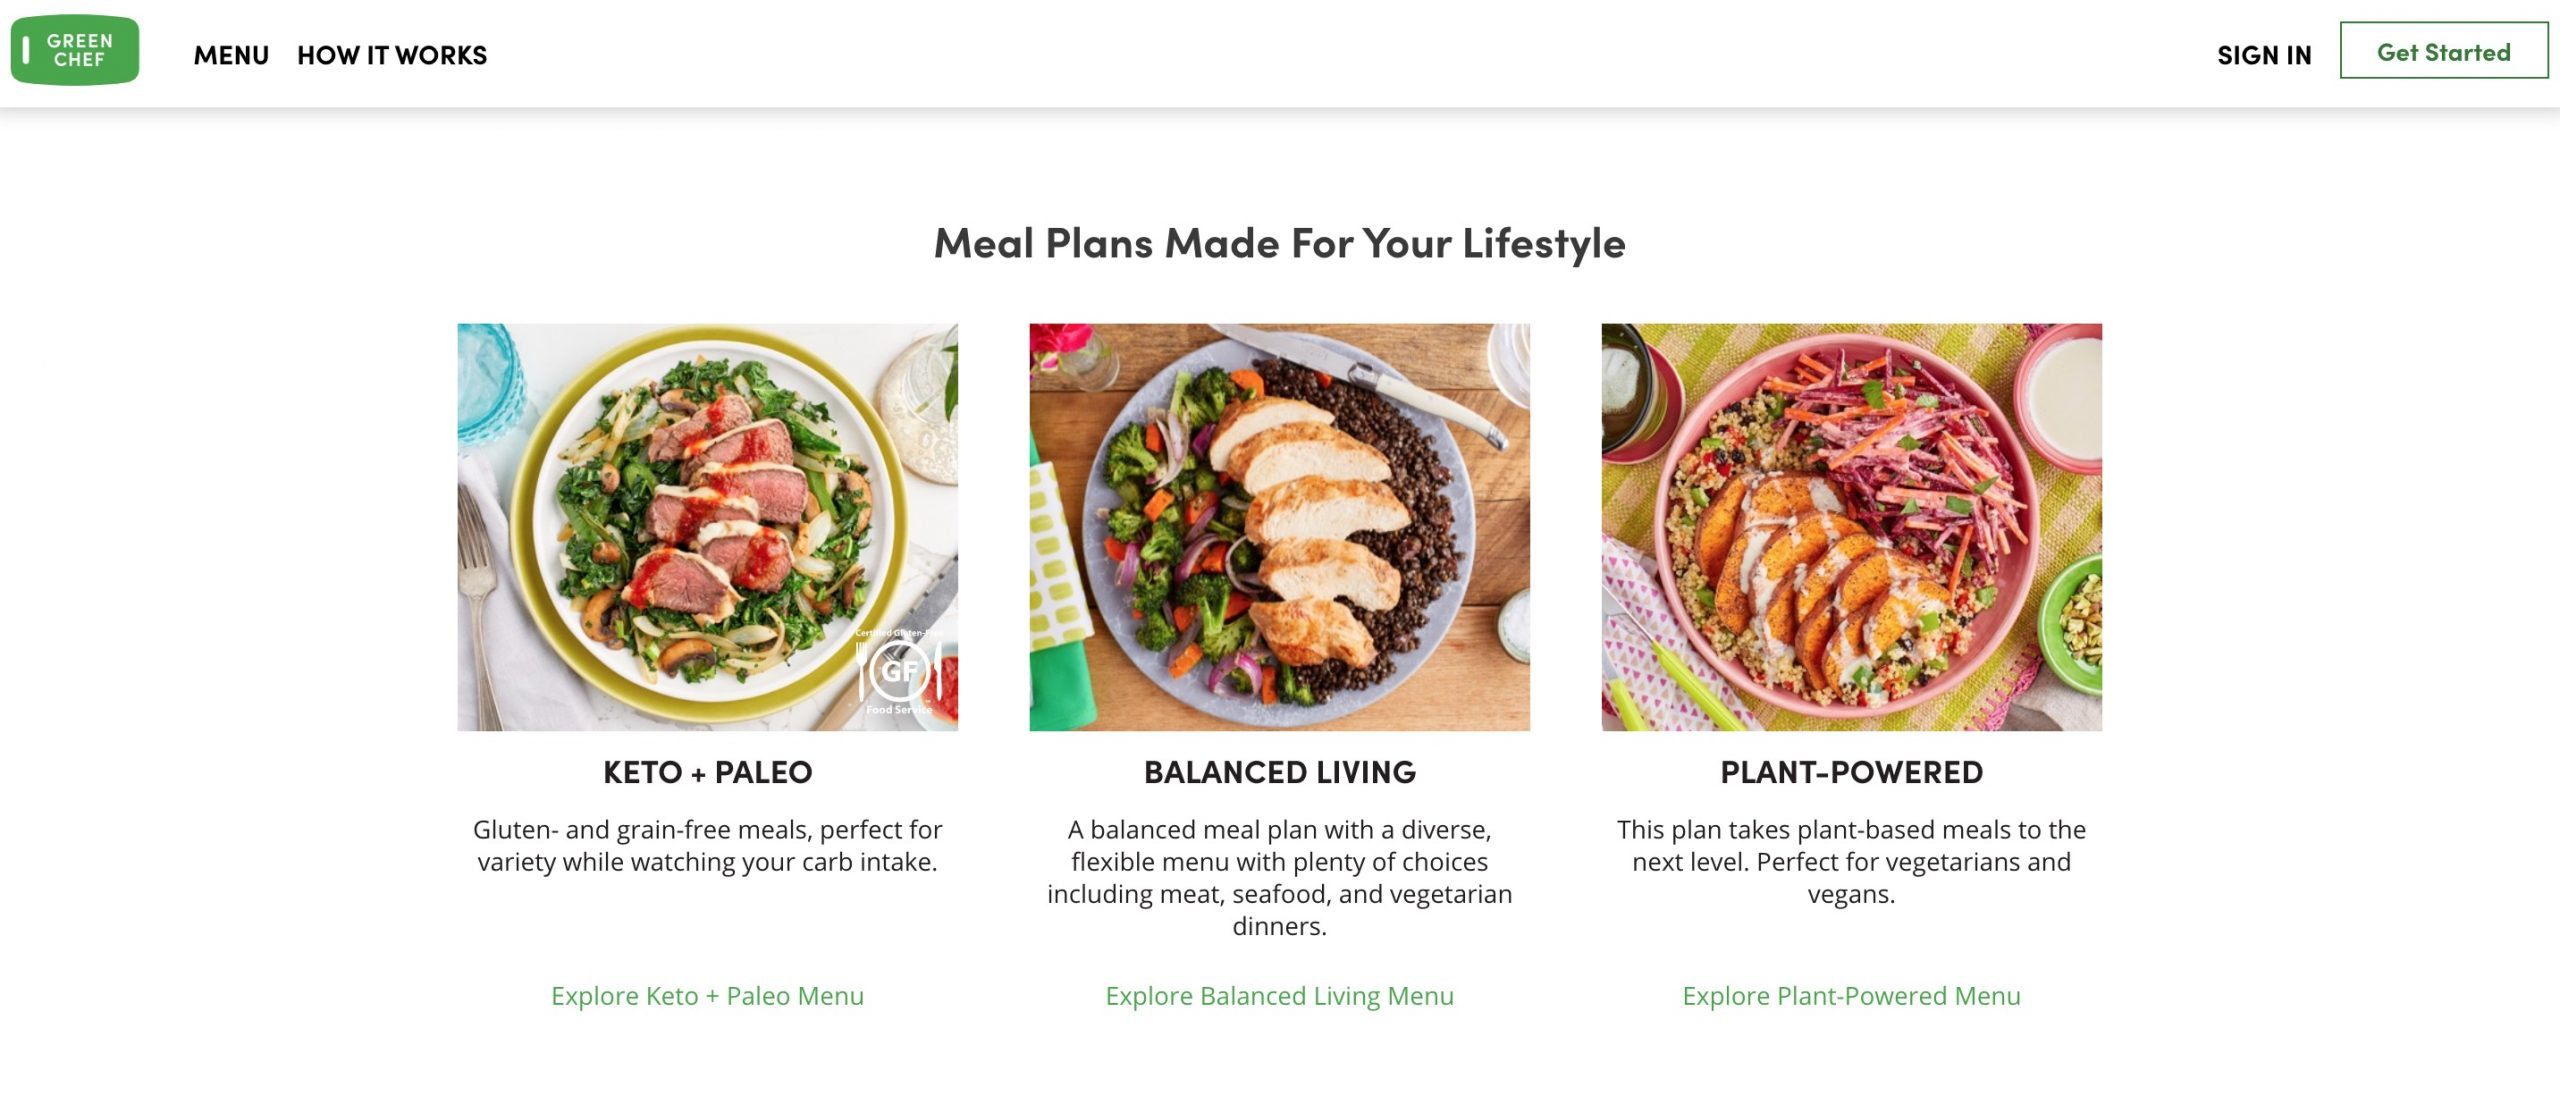 Green Chef meal plans